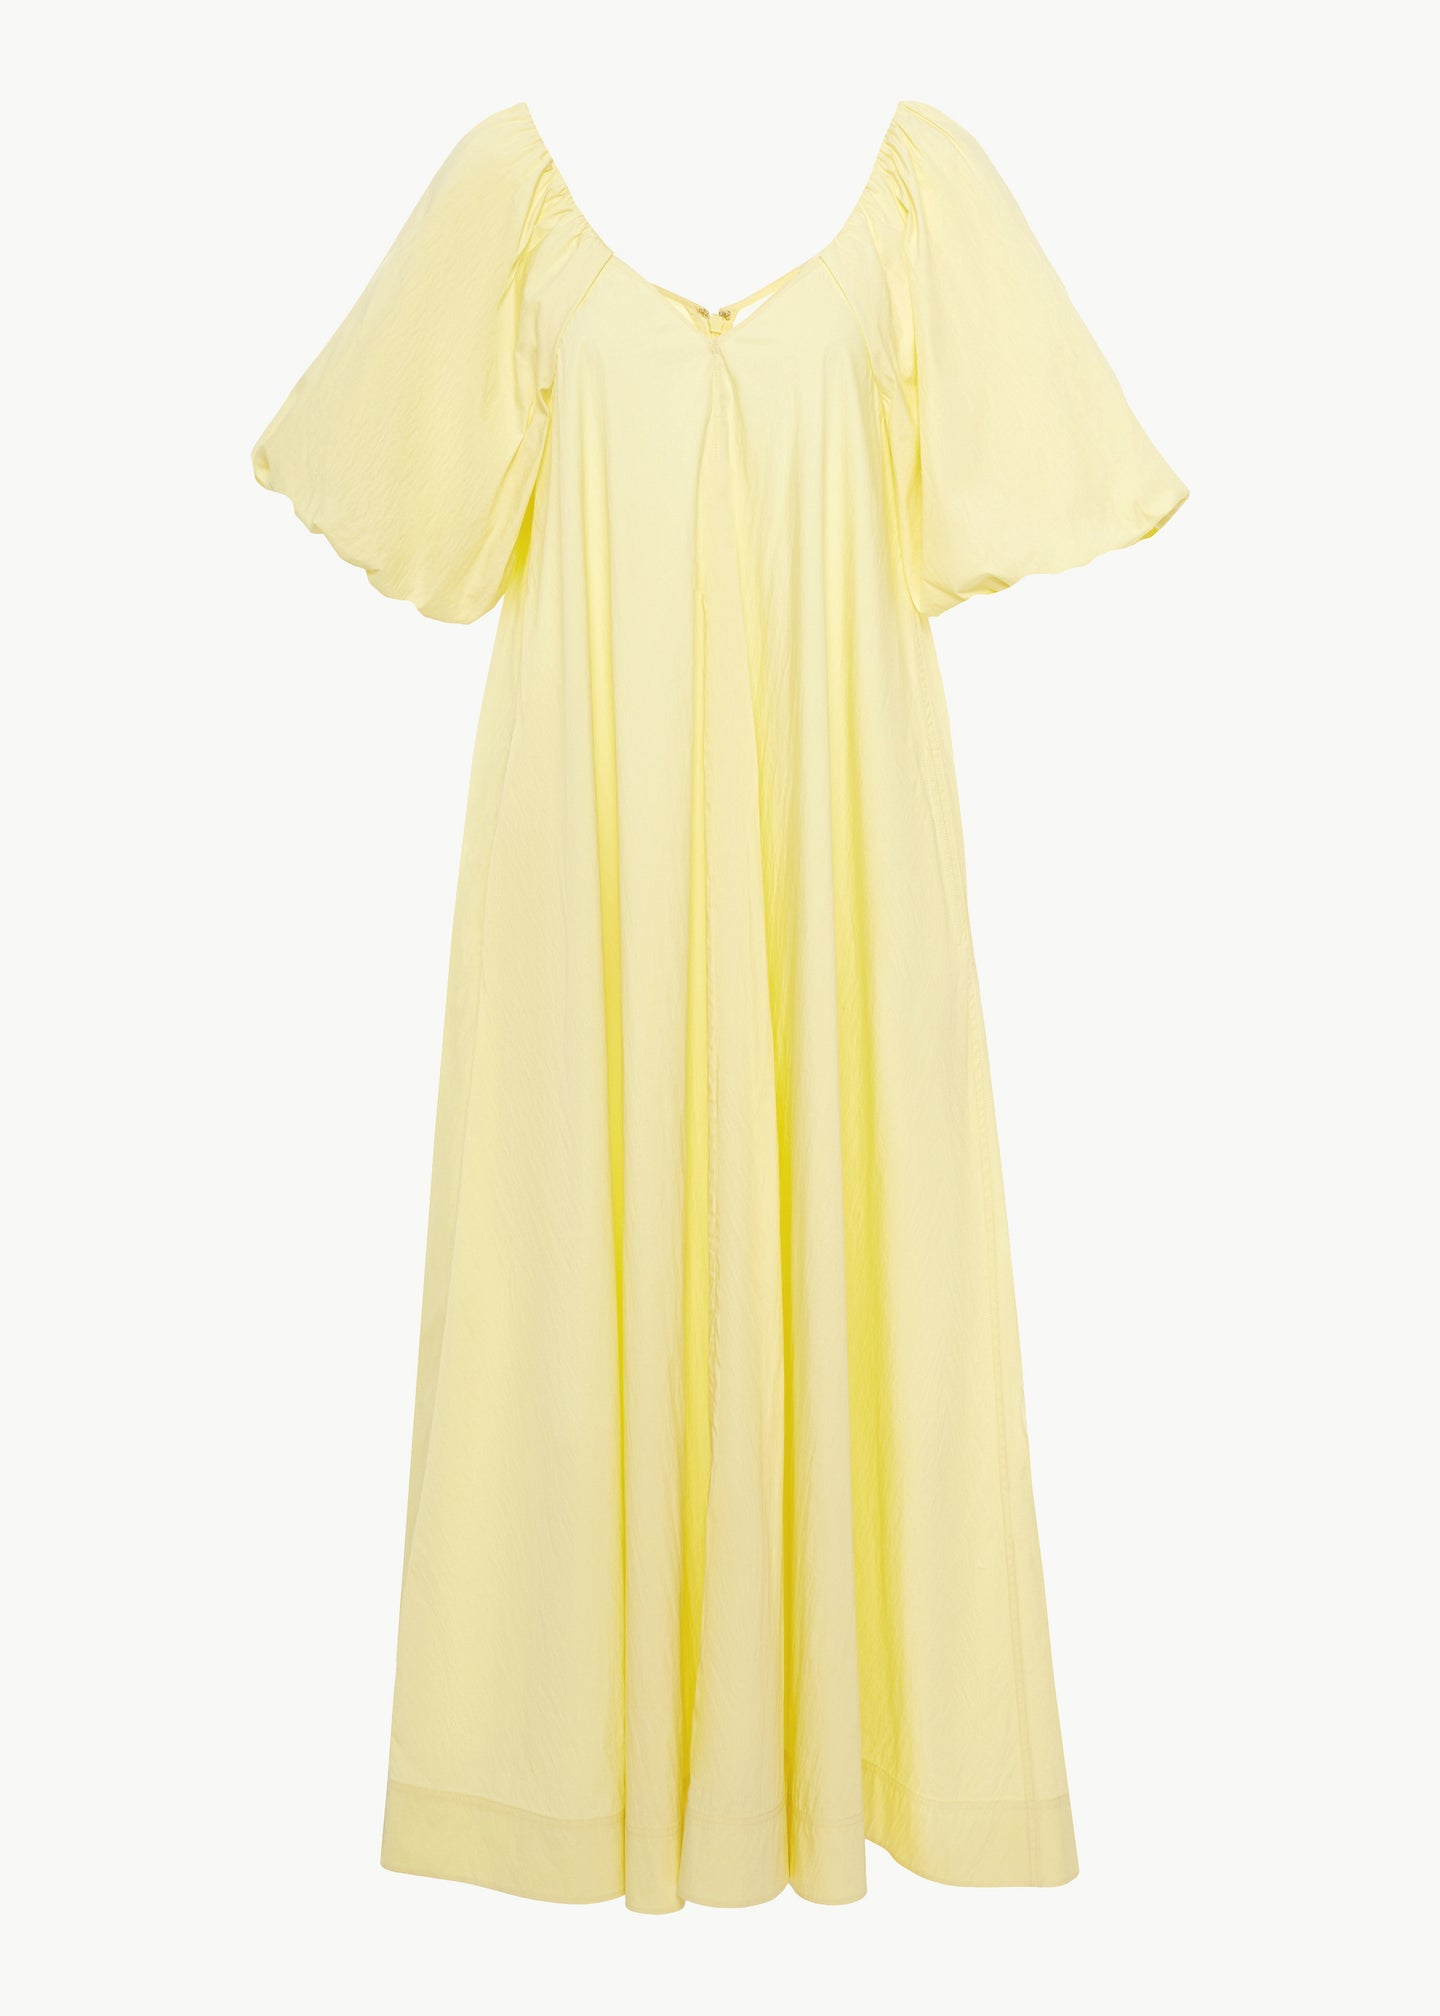 Bubble Sleeve Dress in Cotton Nylon - Yellow - Co Collections